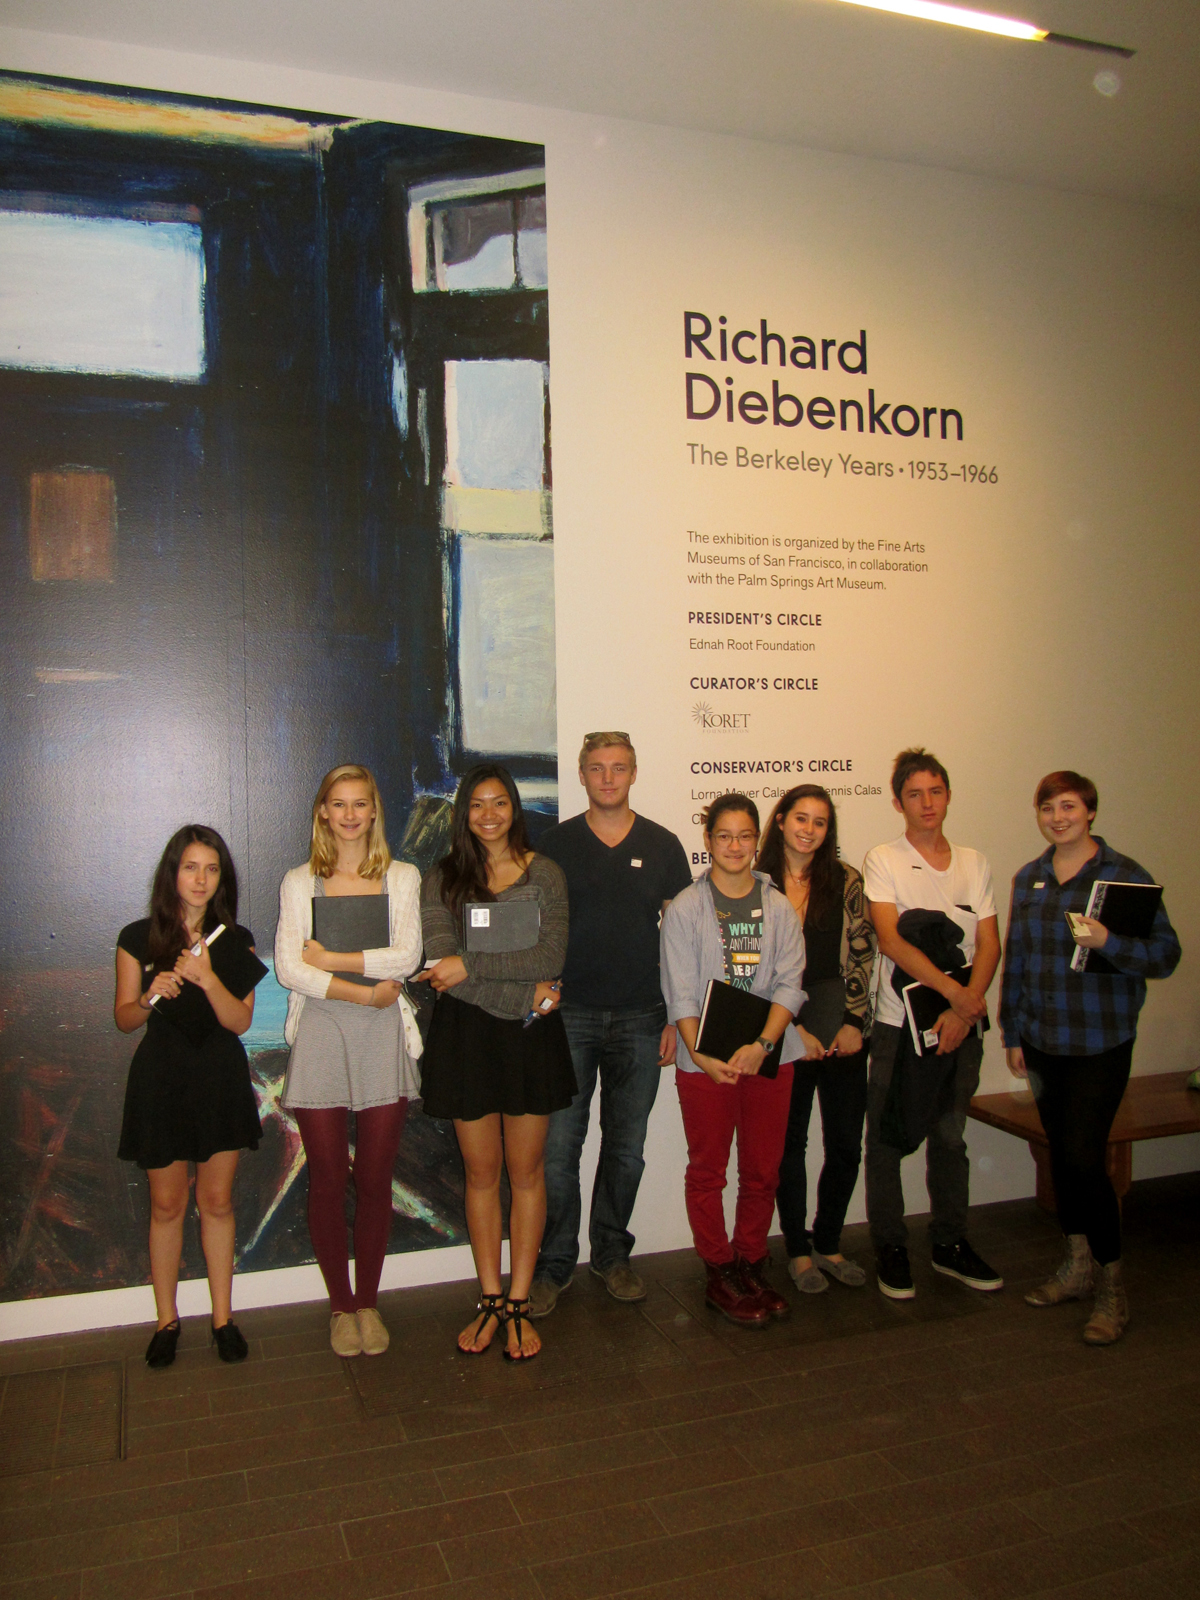 The Bay School Visits deYoung Diebenkorn Exhibit